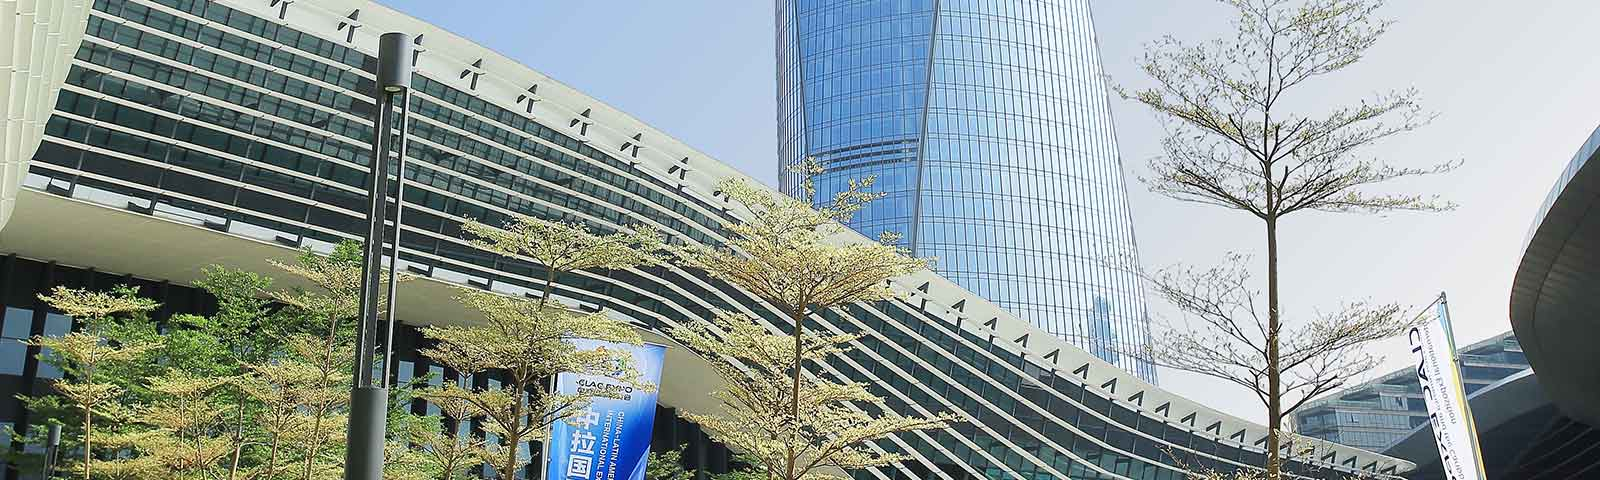 St. Regis Zhuhai hotel and office tower unveiled to the public